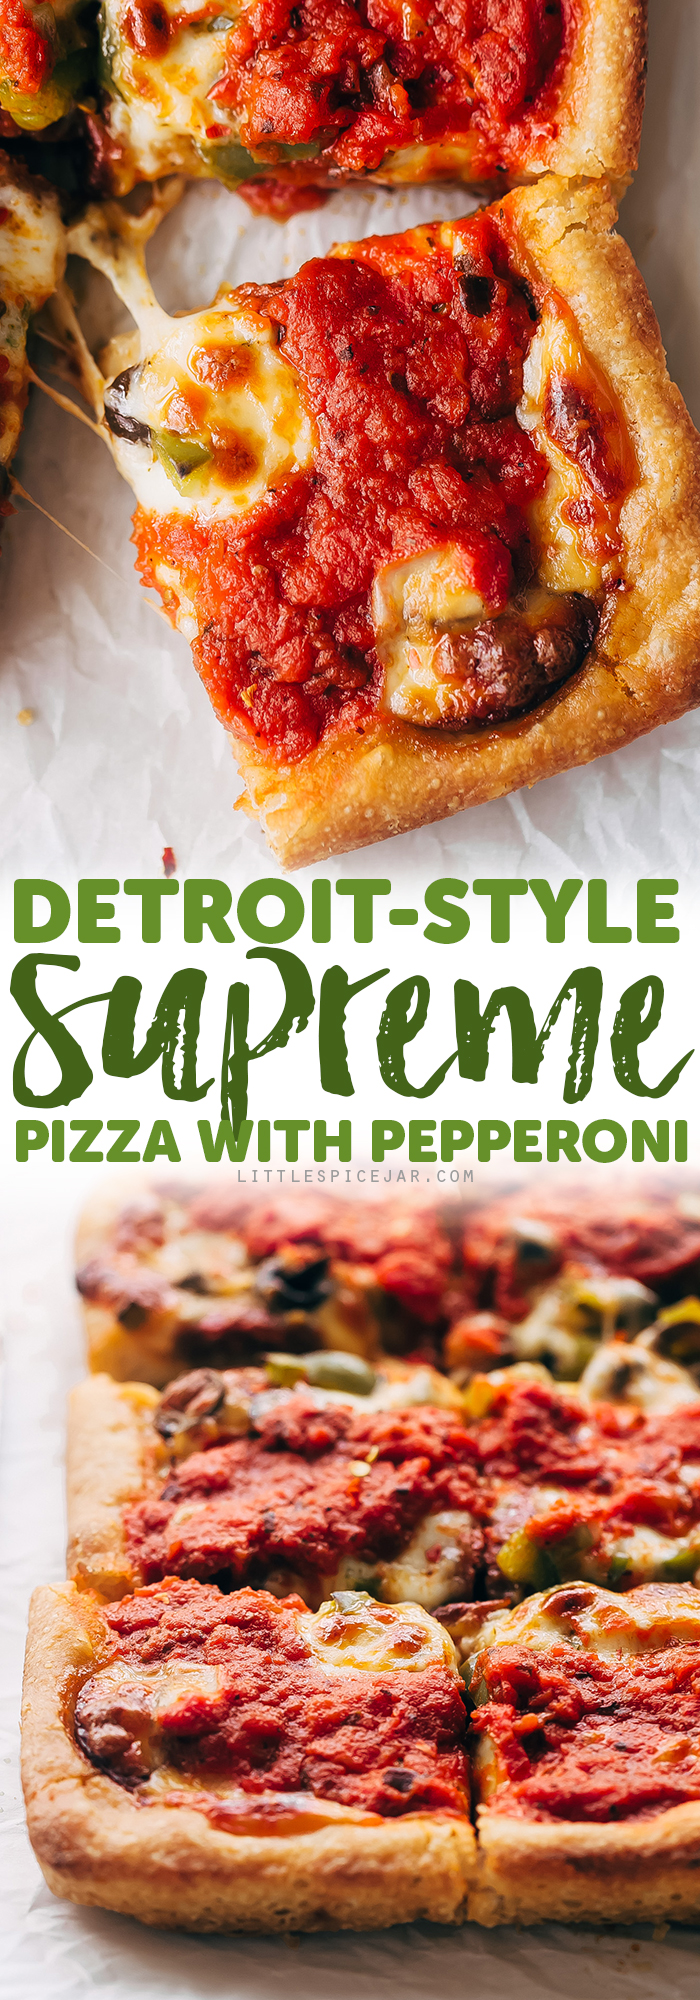 Supreme Detroit-Style Pizza - Homemade Detroit-Style pizza with the best crispy, butter dough! It's almost like focaccia bread with pizza toppings on top! #detroitpizza #detroitstylepizza #homemadepizza #pizza | Littlespicejar.com